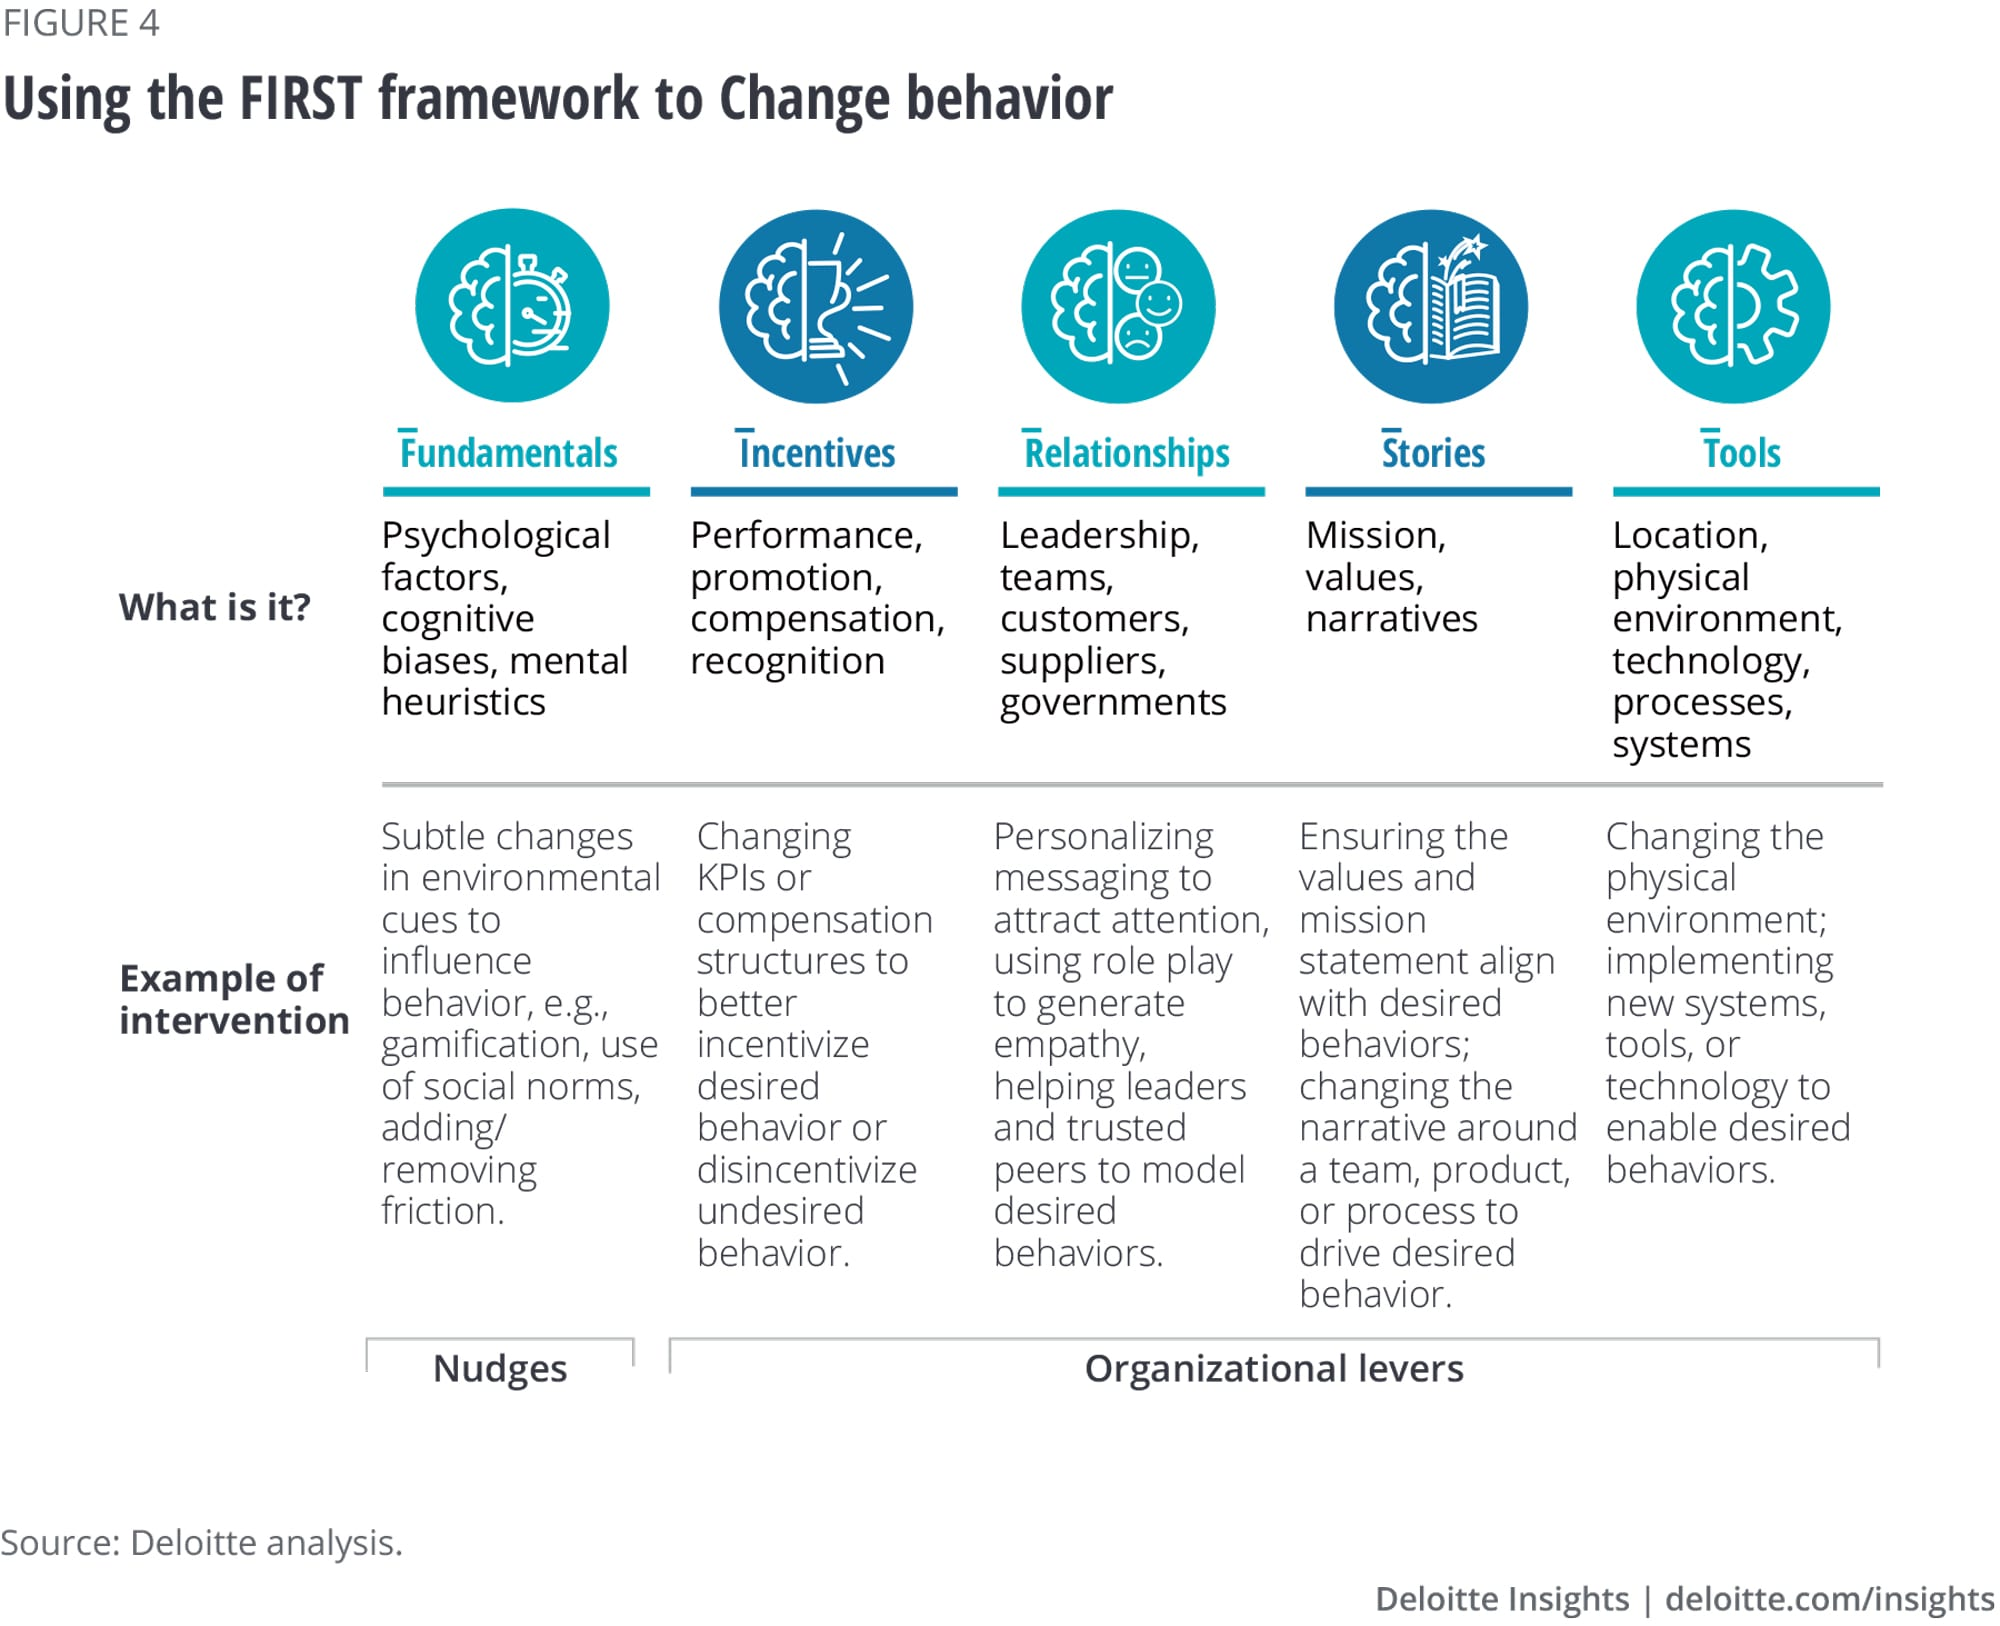 Using the FIRST framework to change behavior